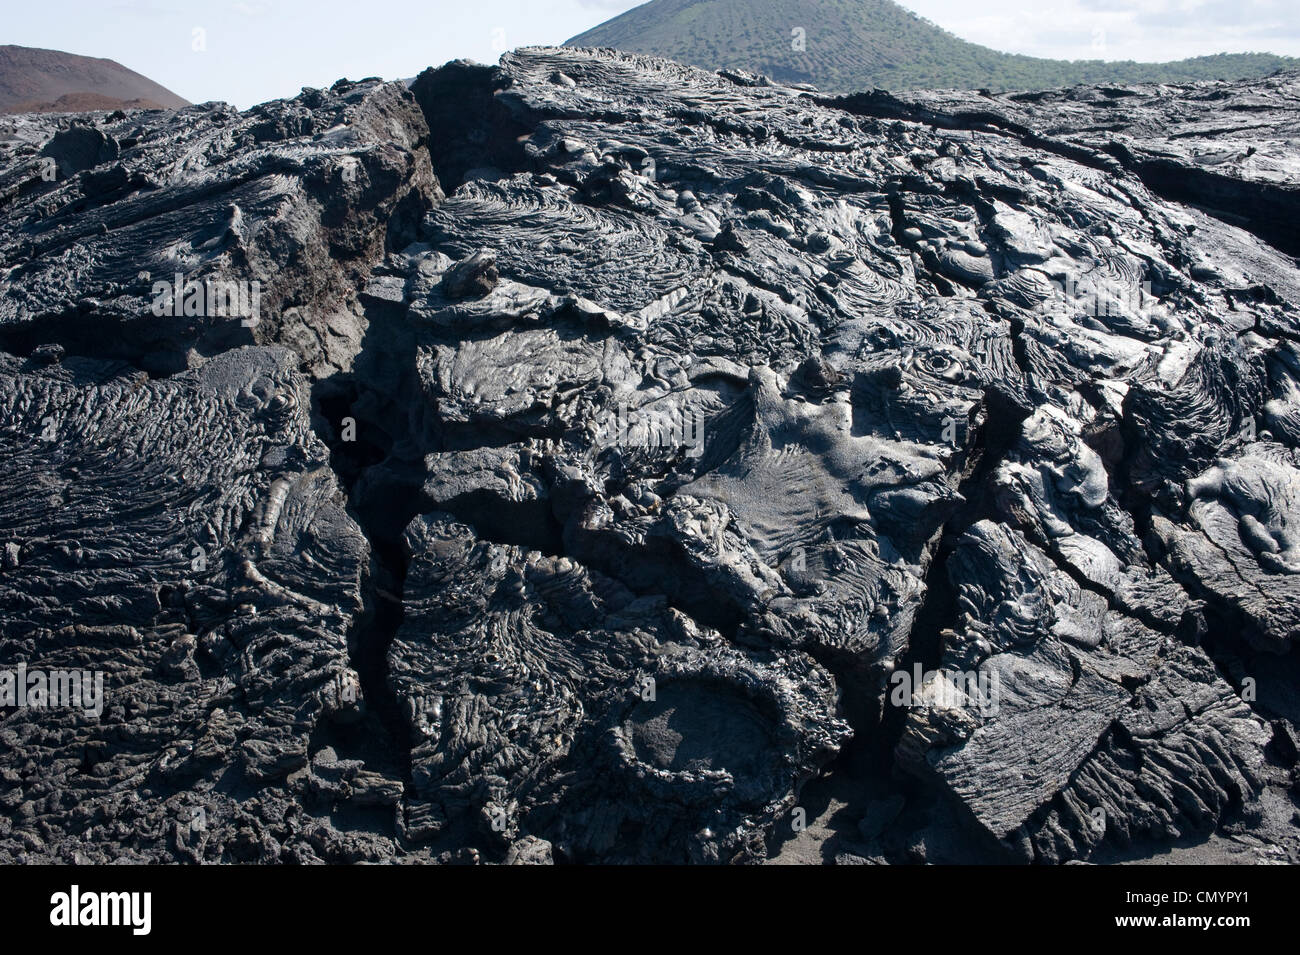 Volcanic rock formations, Galapagos Islands Stock Photo